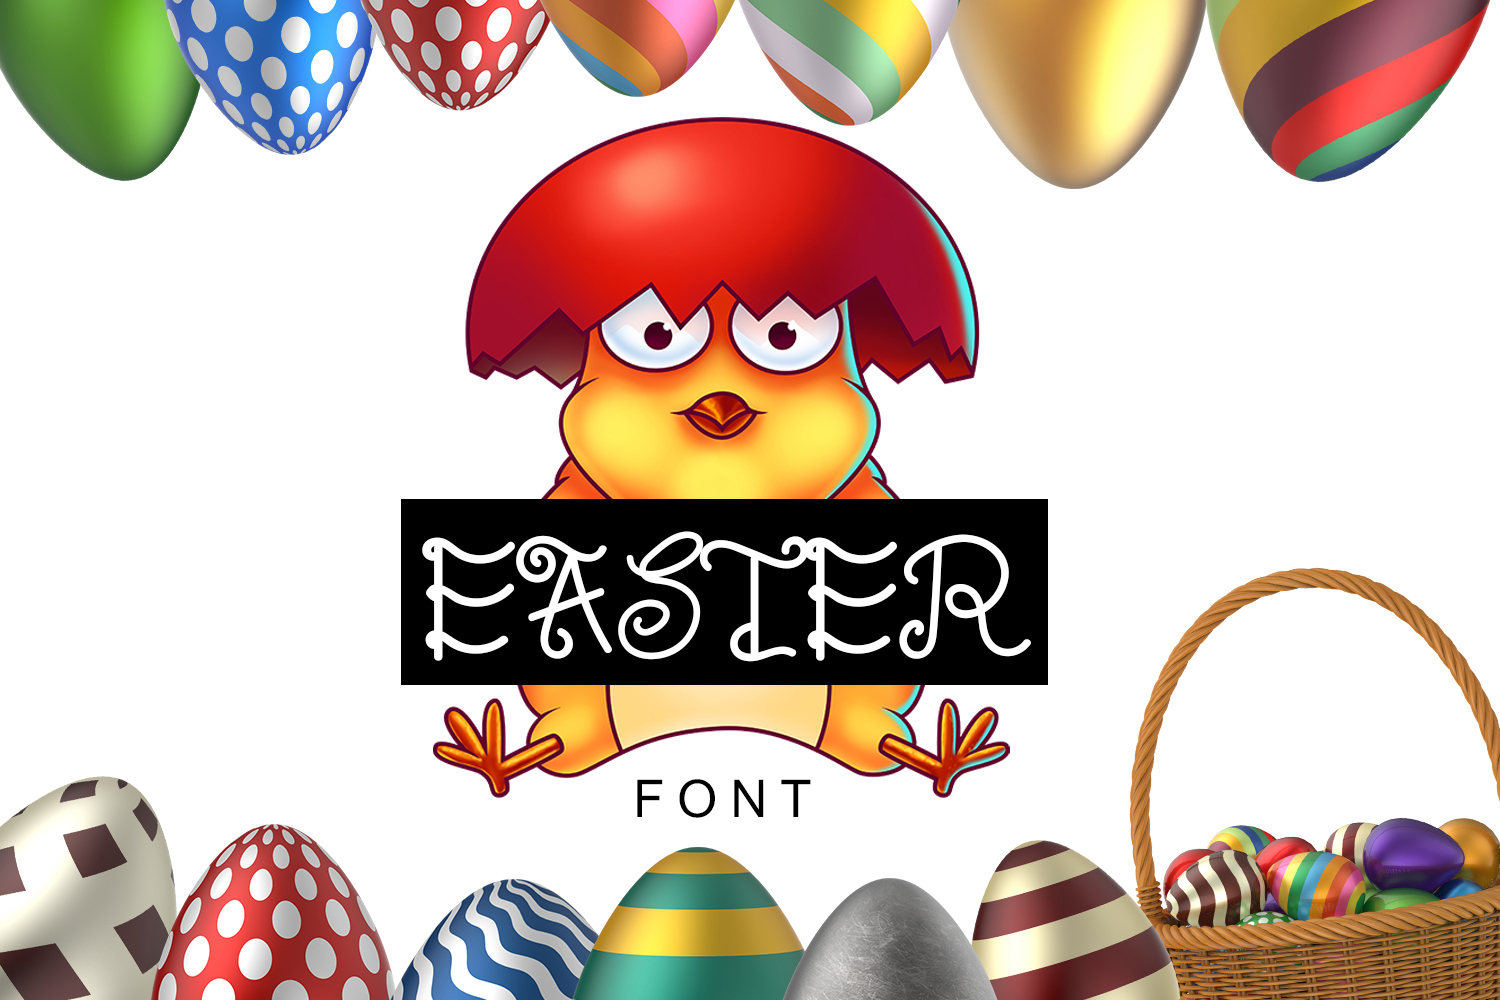 Happy Easter Font example image 1